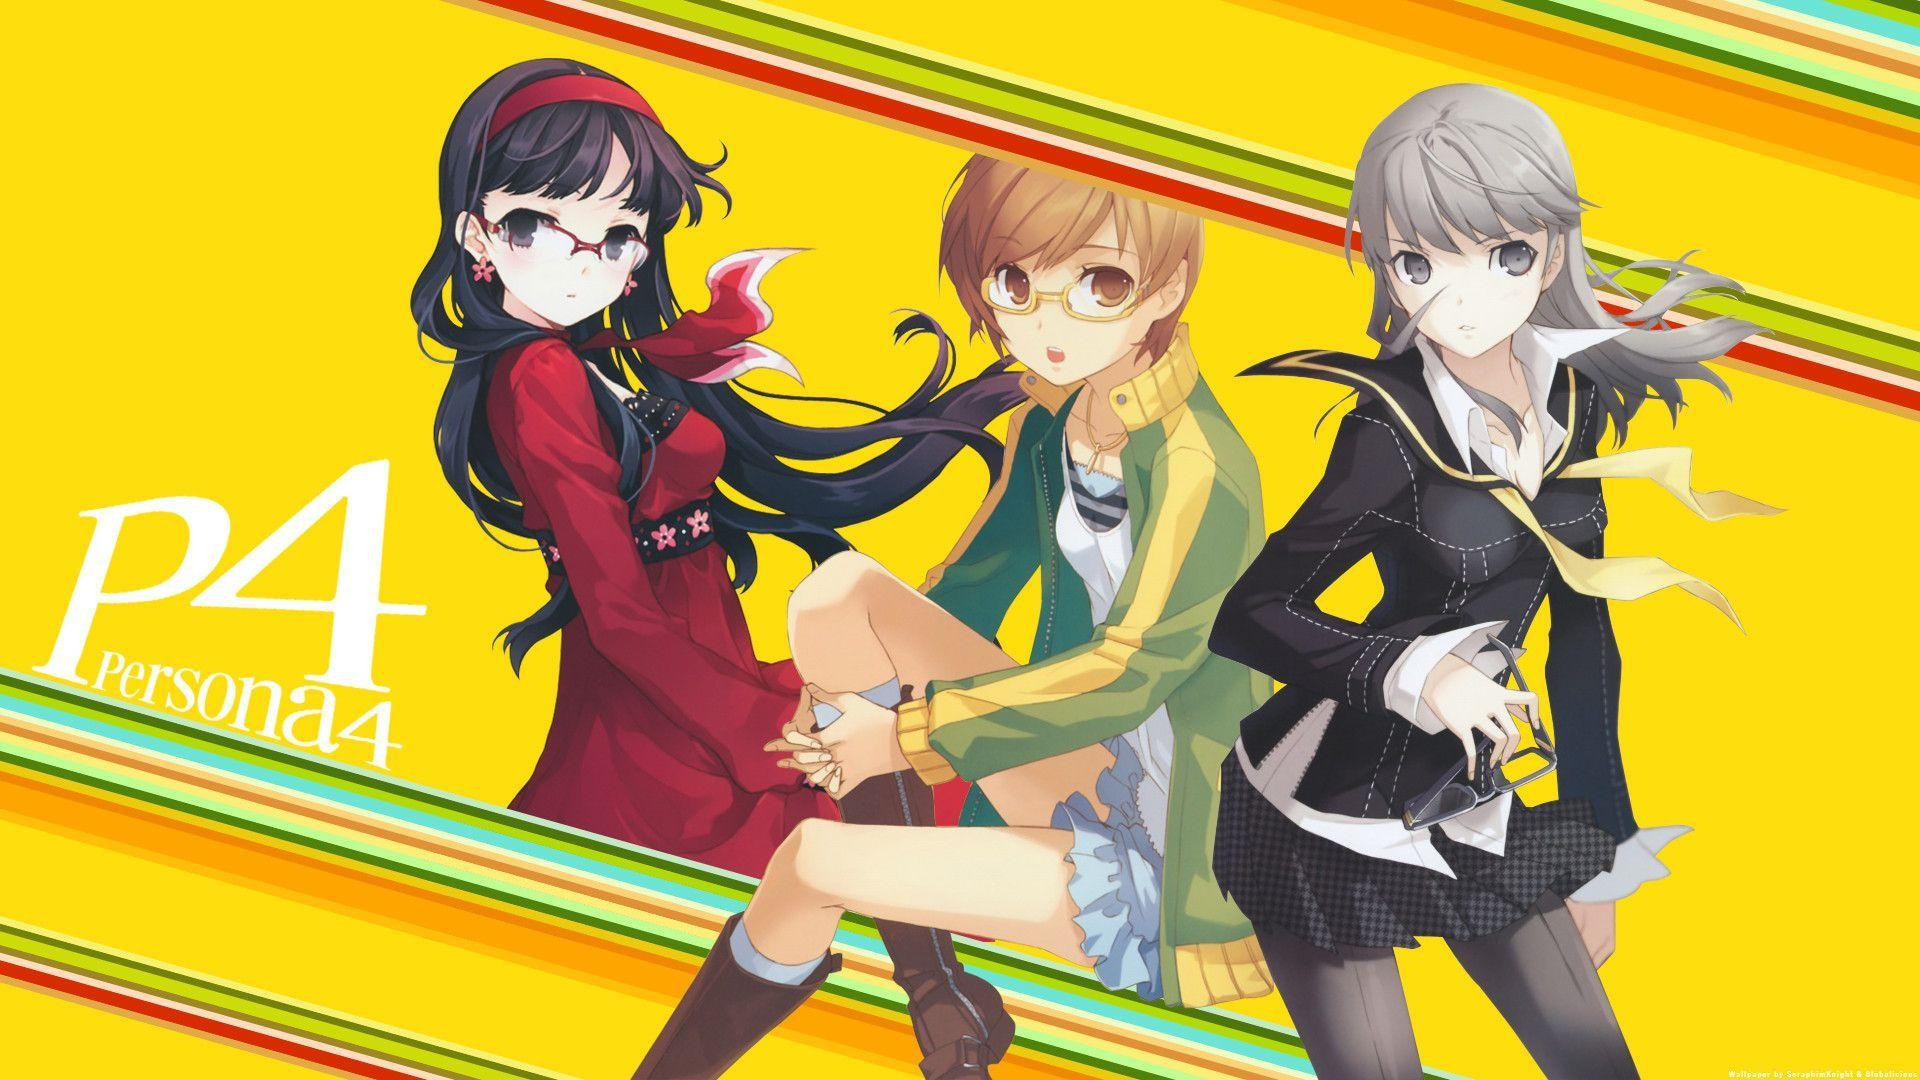 91 Persona 4 Wallpapers | Persona 4 Backgrounds Page 3